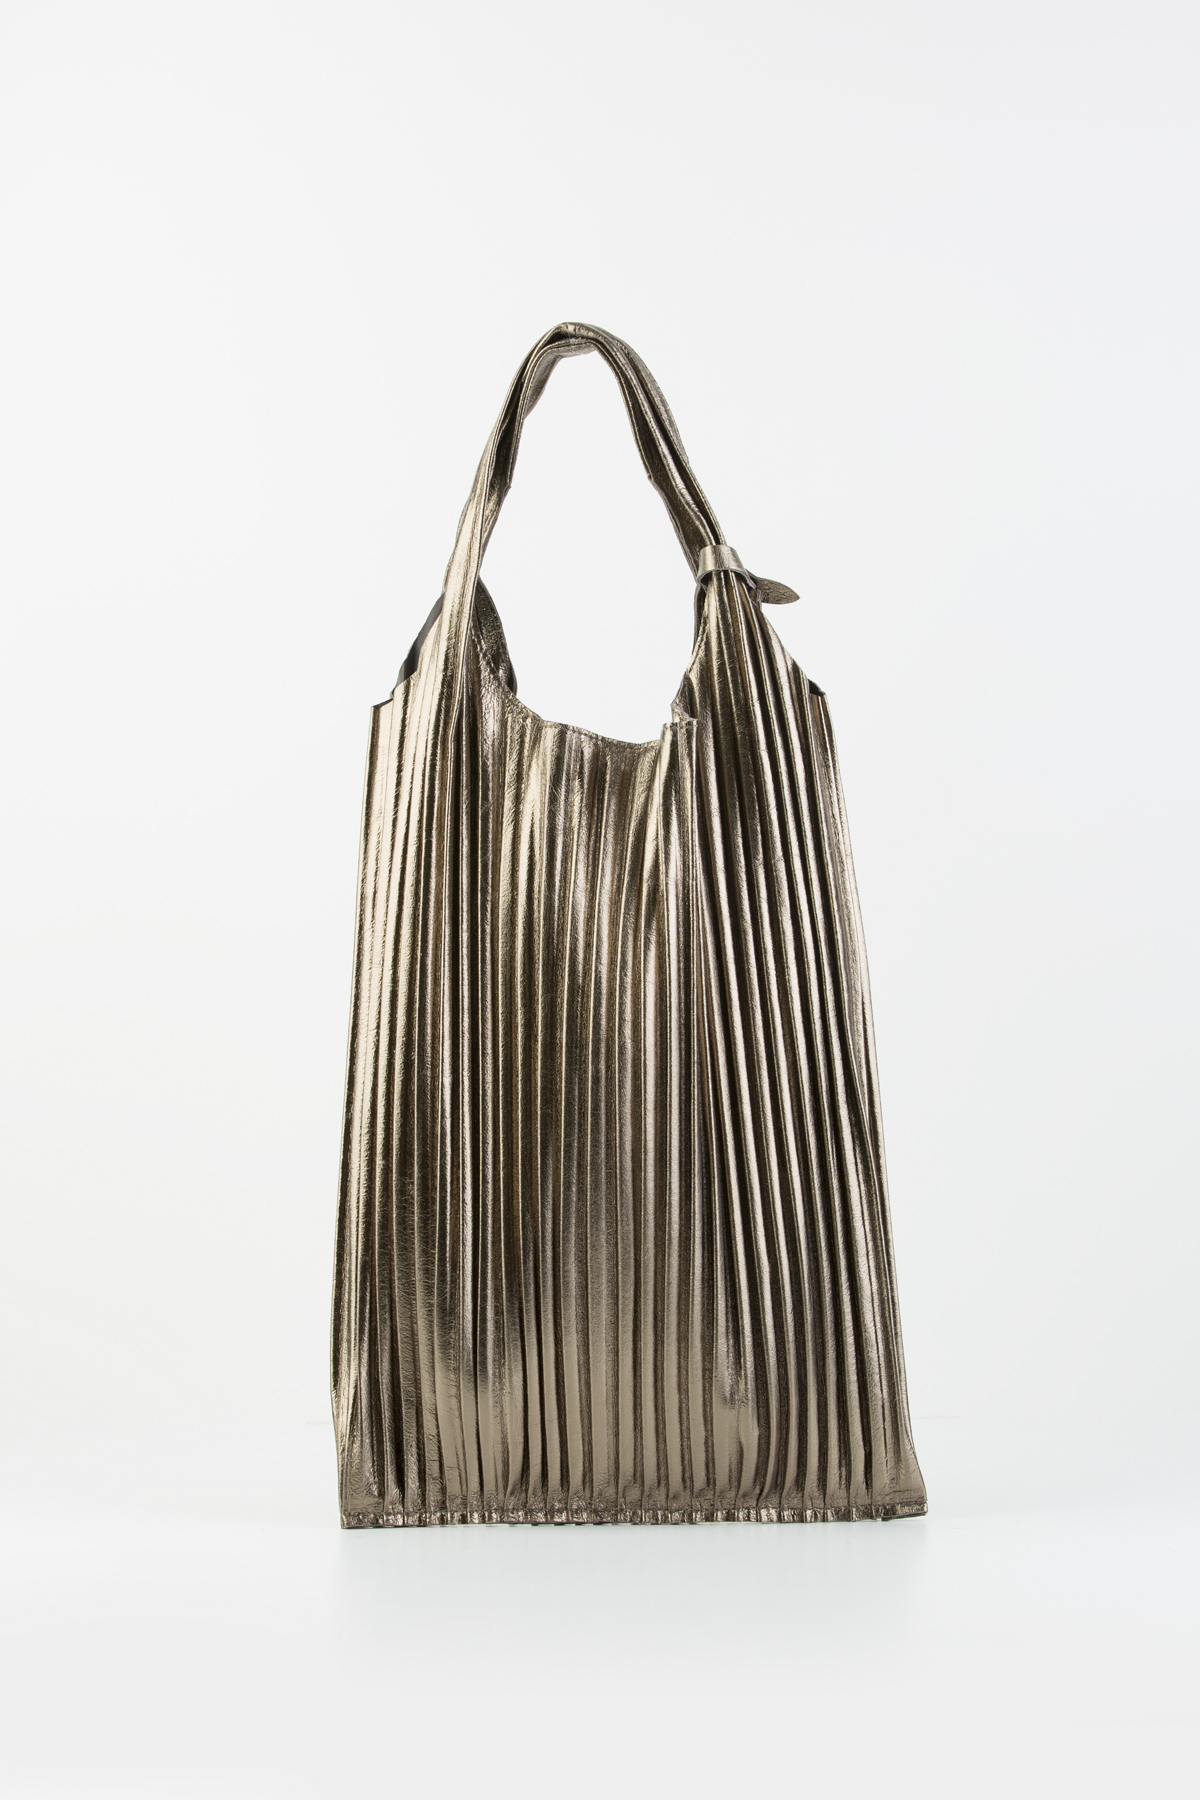 picasso-bronze-bag-anita-billardi-leather-matchboxathens